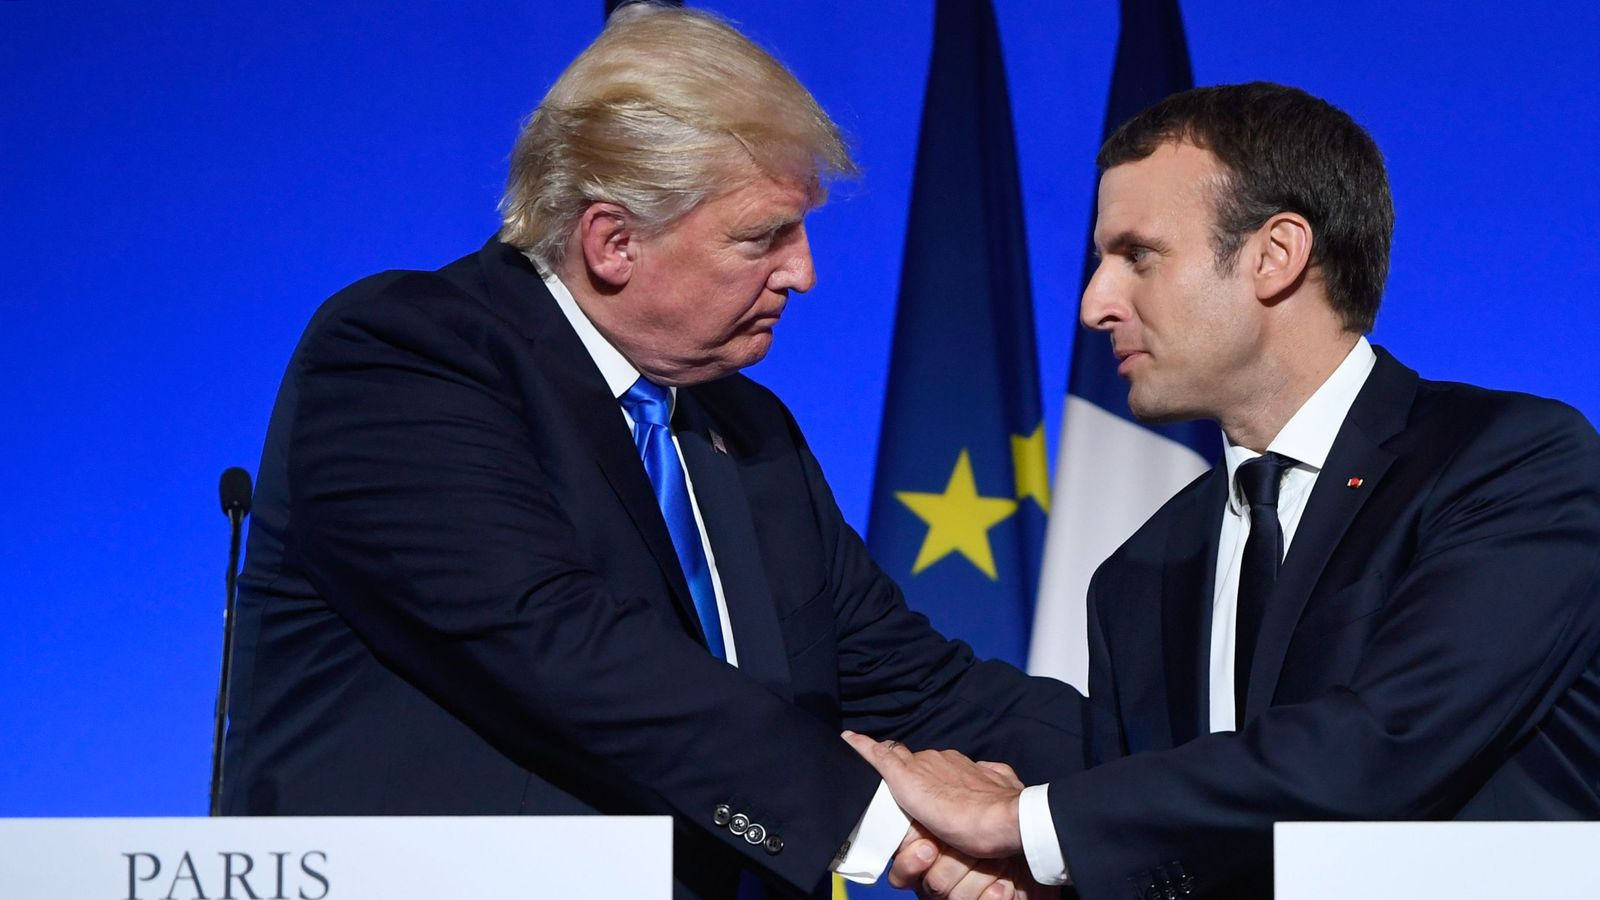 Visiting French president, Trump publicly downplays furor at home over Russian Federation  connections